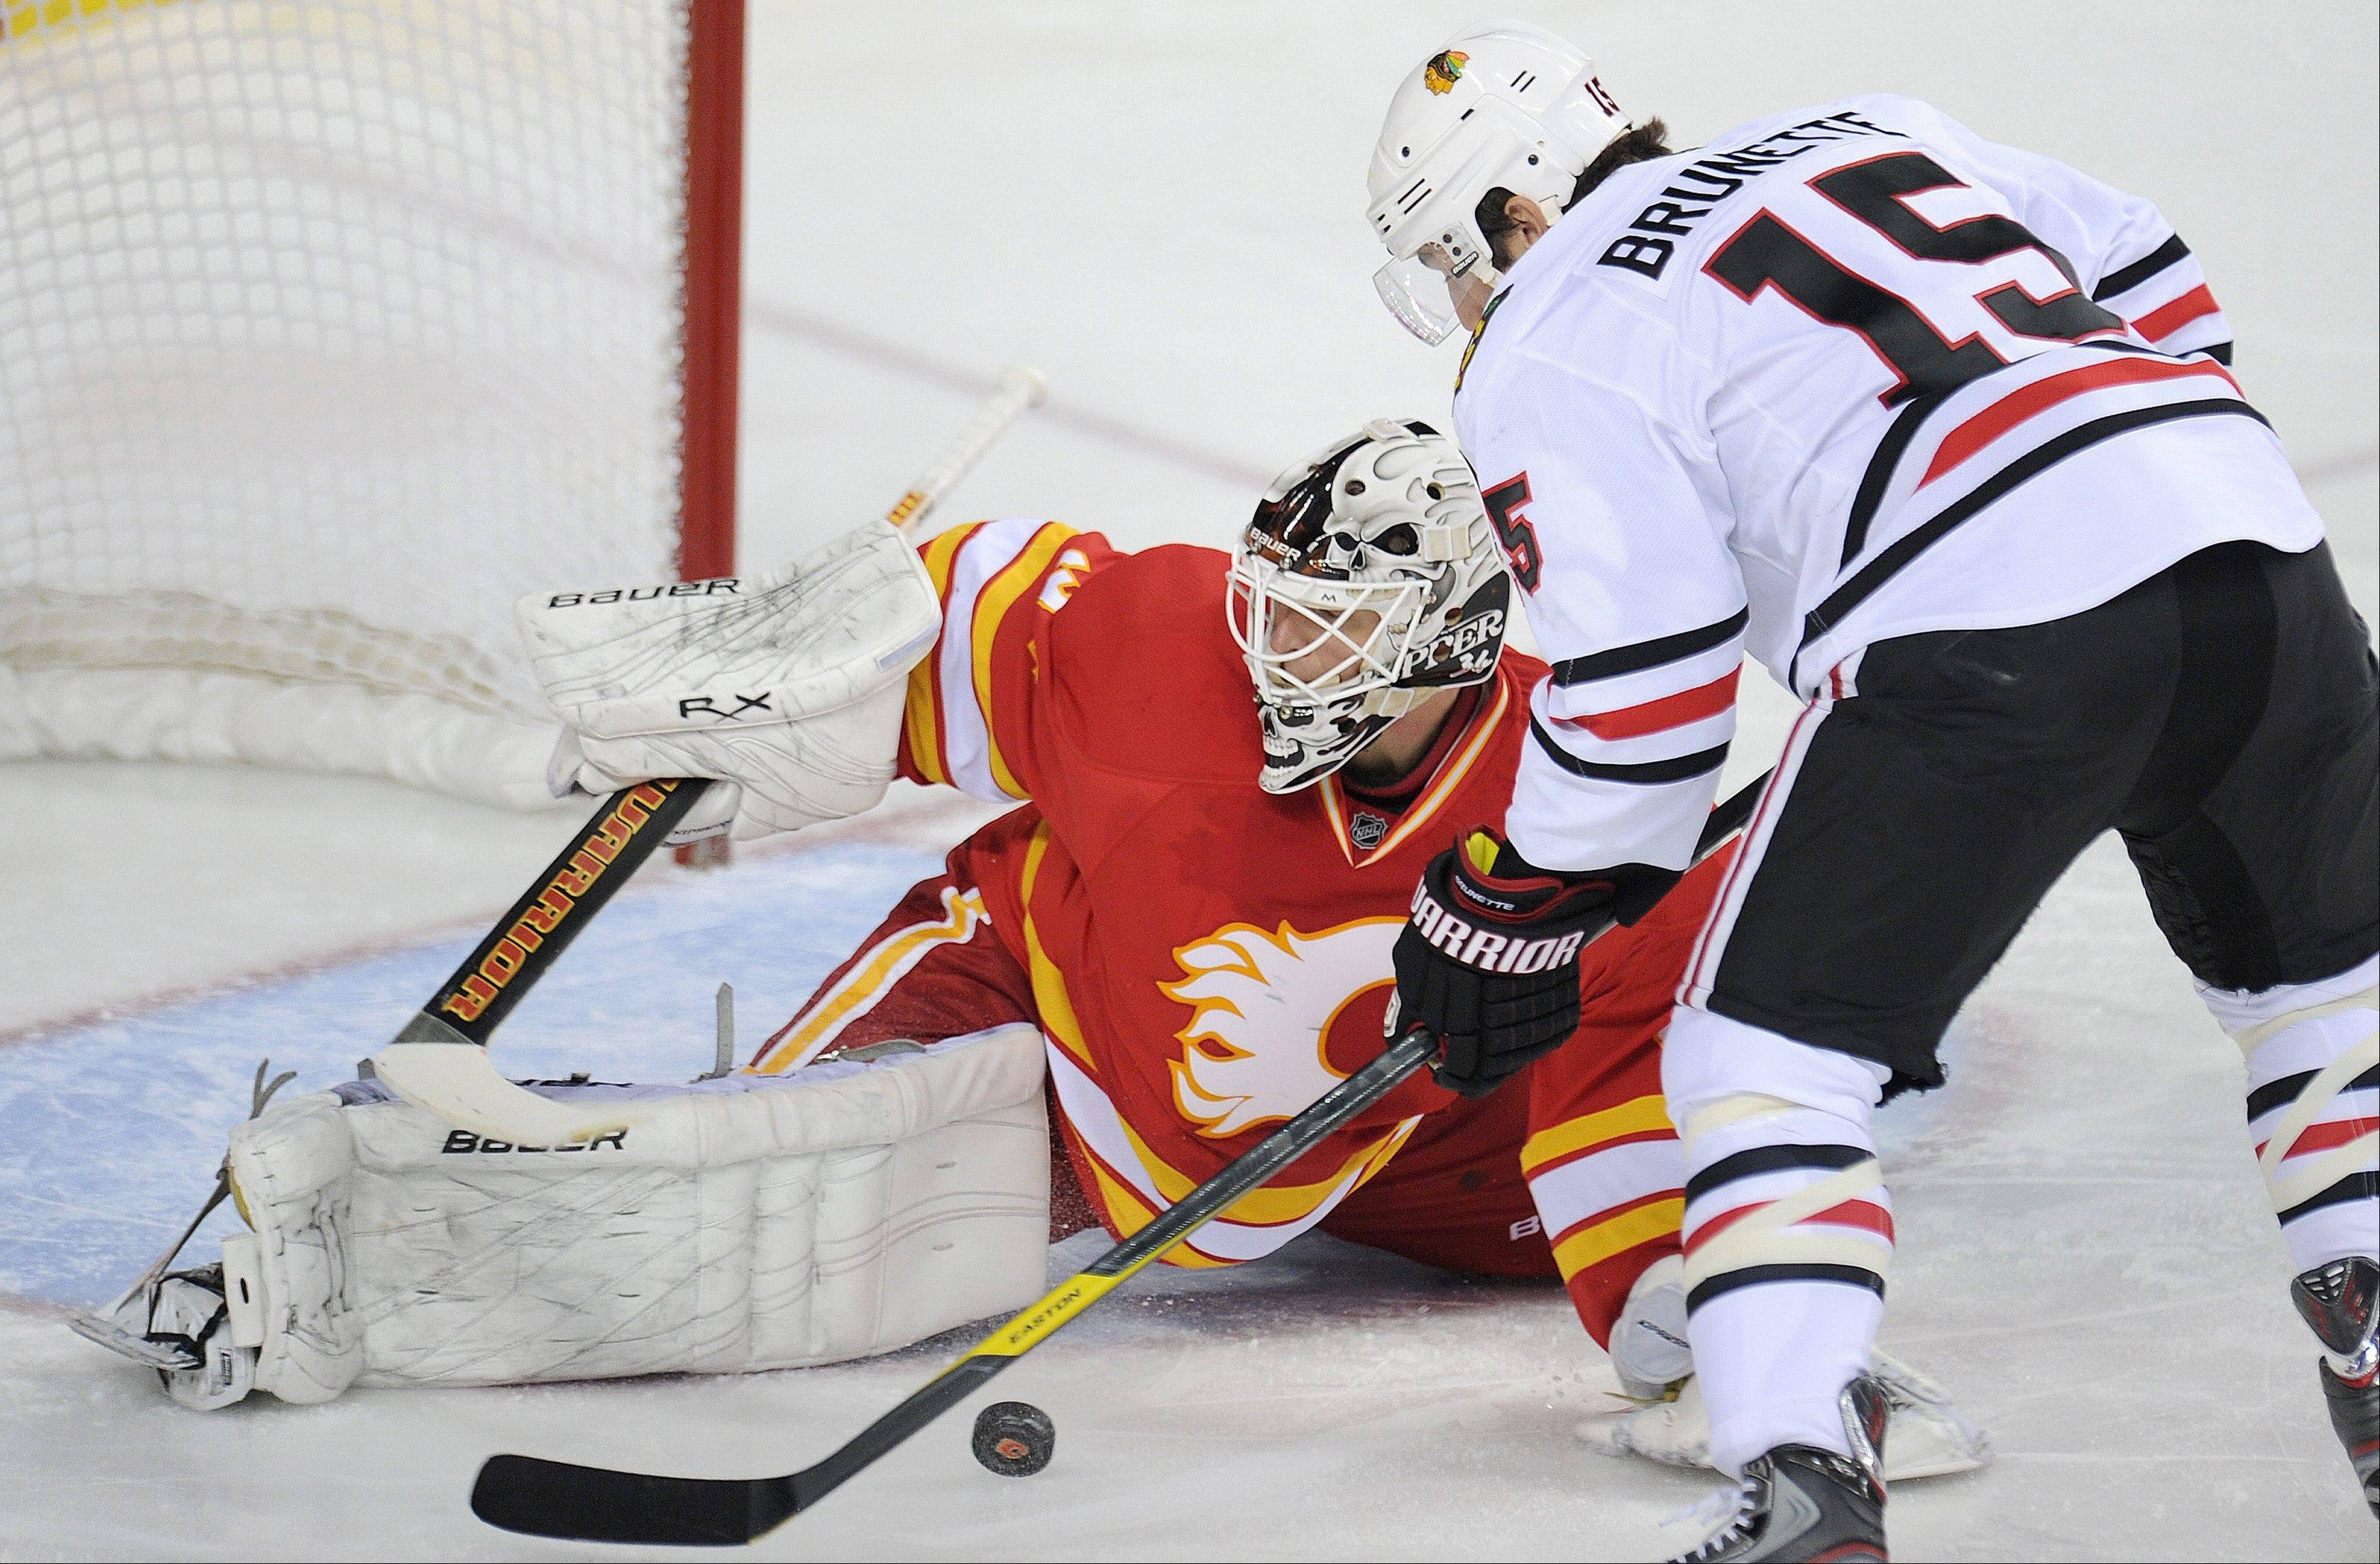 The Hawks' Andrew Brunette, right, has a shot stopped by Flames goalie Mikka Kiprusoff during the second period Friday.